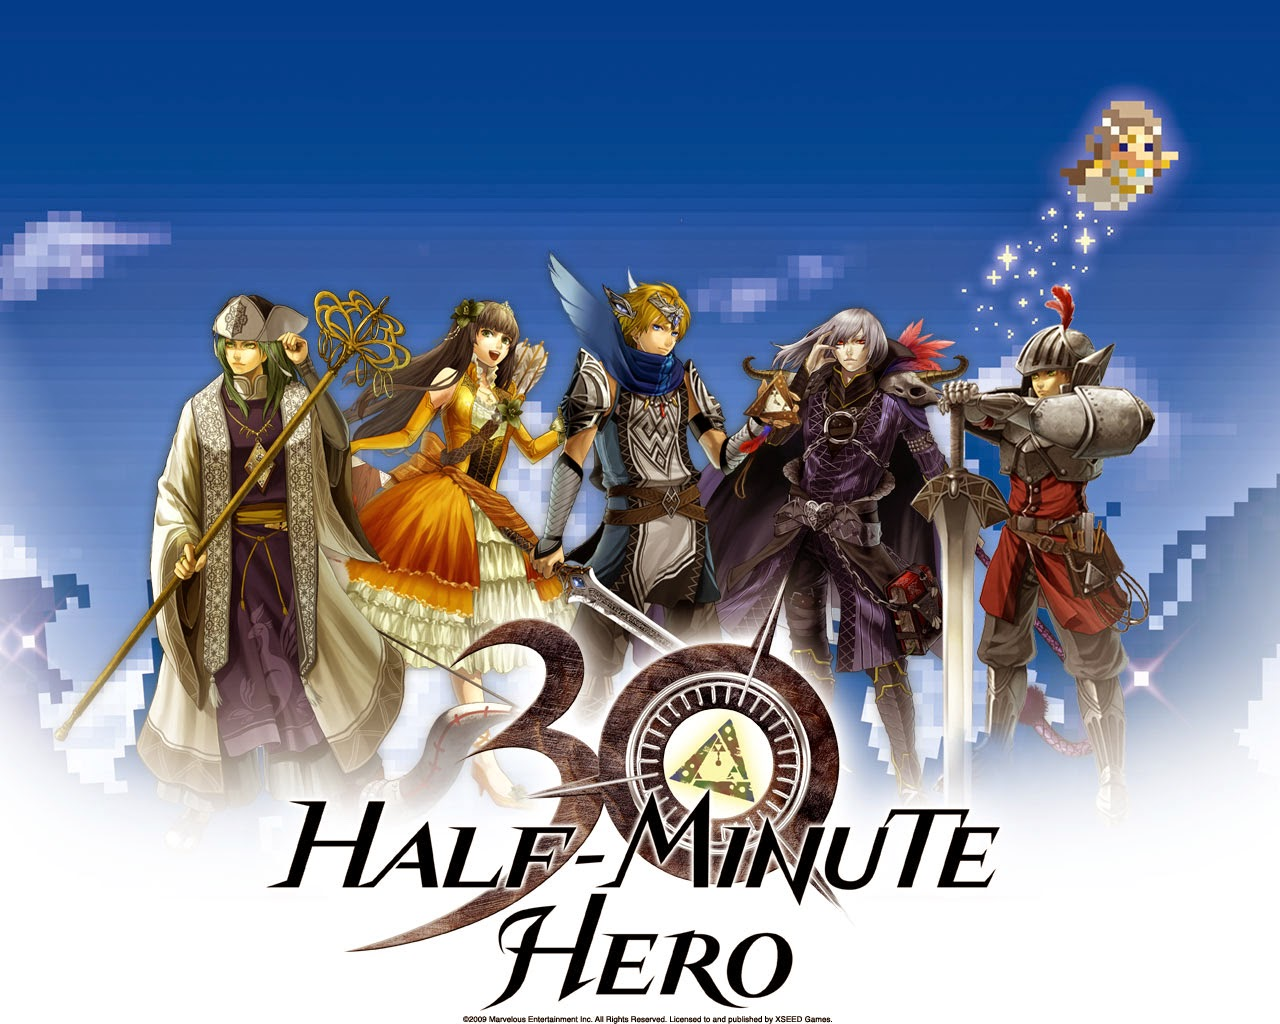 Half Minute Hero: The Second Coming Backgrounds, Compatible - PC, Mobile, Gadgets| 1280x1024 px